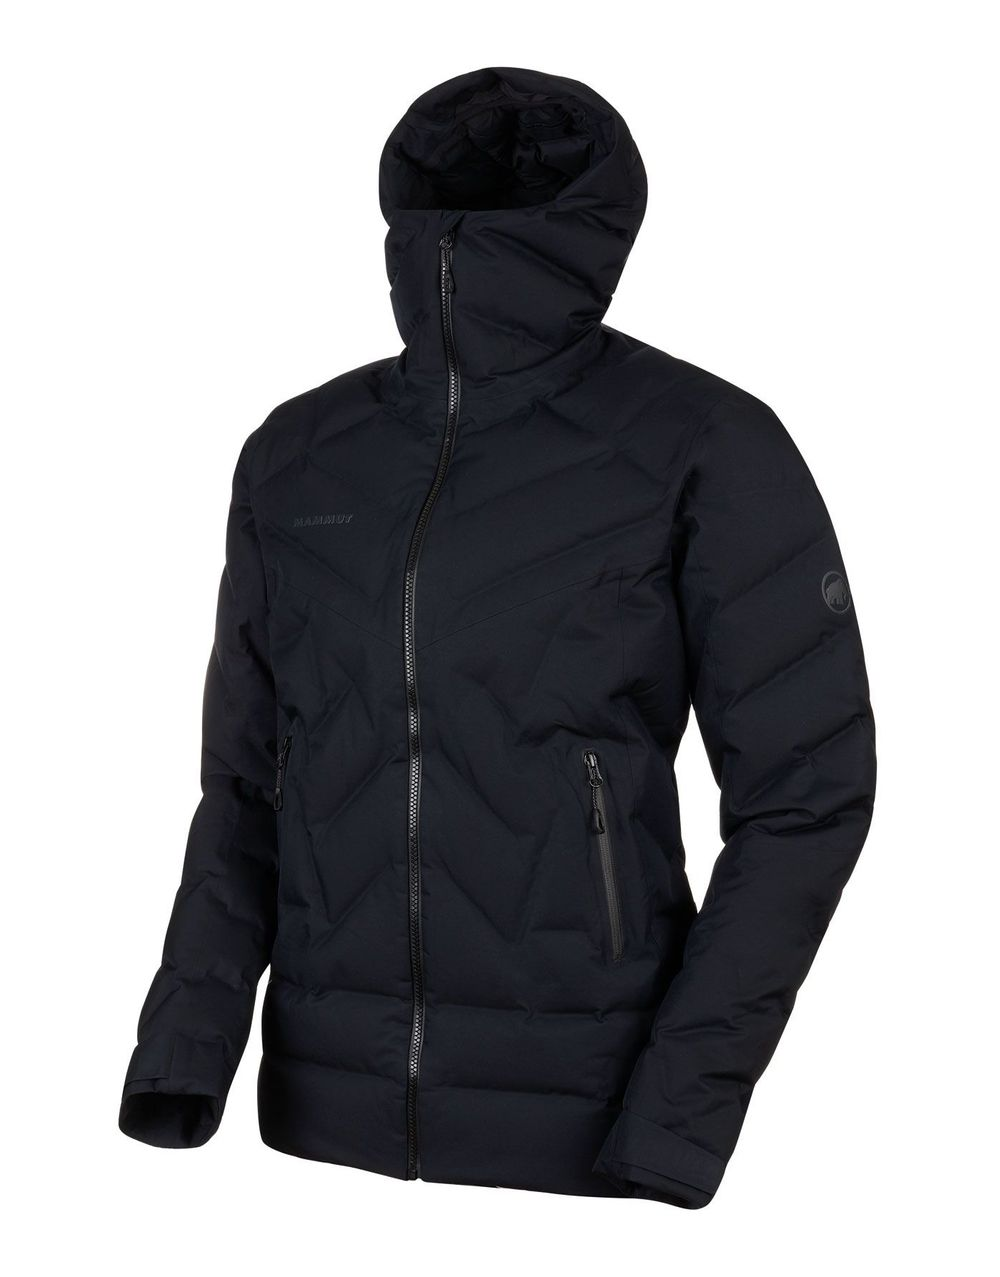 Mammut Photics Thermo Hooded Jacket